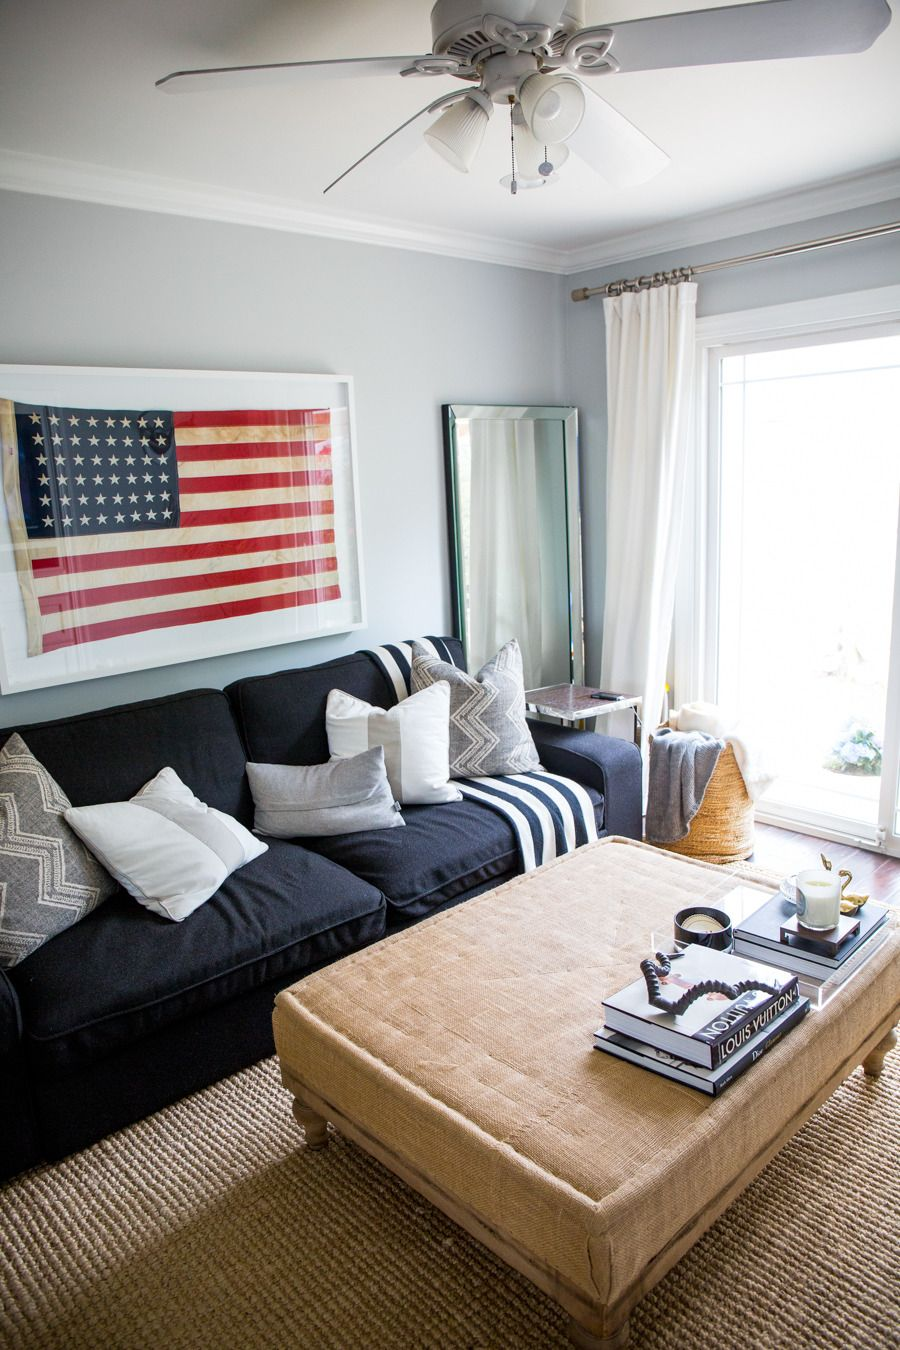 Chic Los Angeles Bungalow | Pinterest | Framed american flag, Room ...